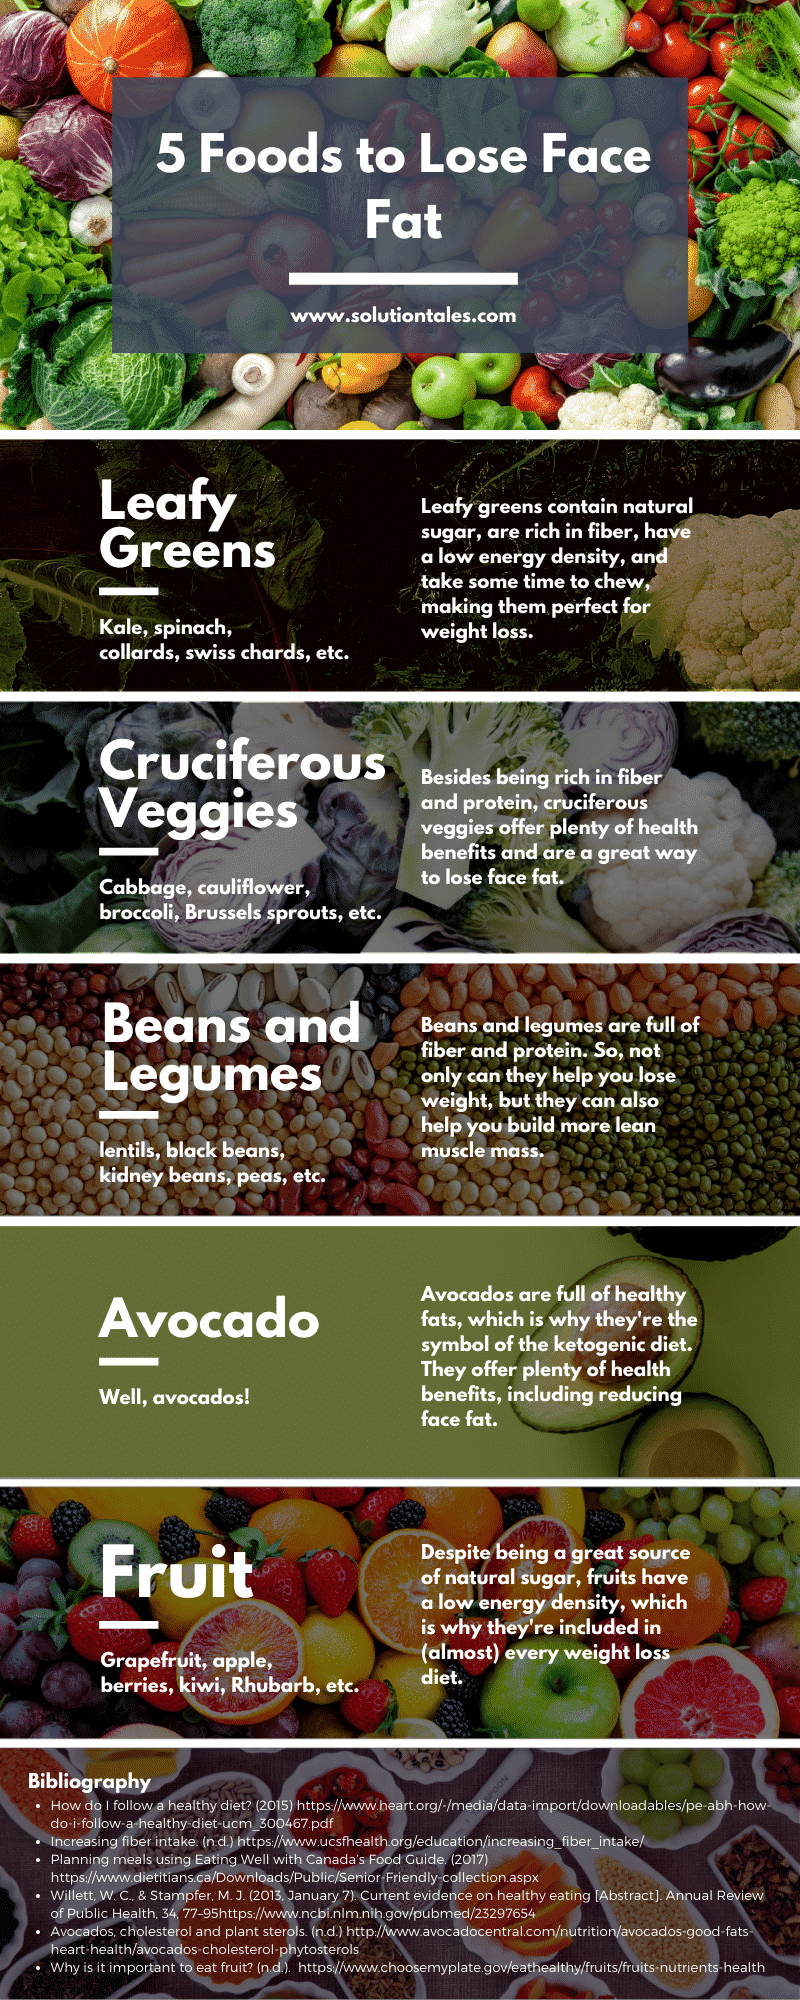 Which Foods Make You Lose Face Fat - Infographic by Solutiontales.com